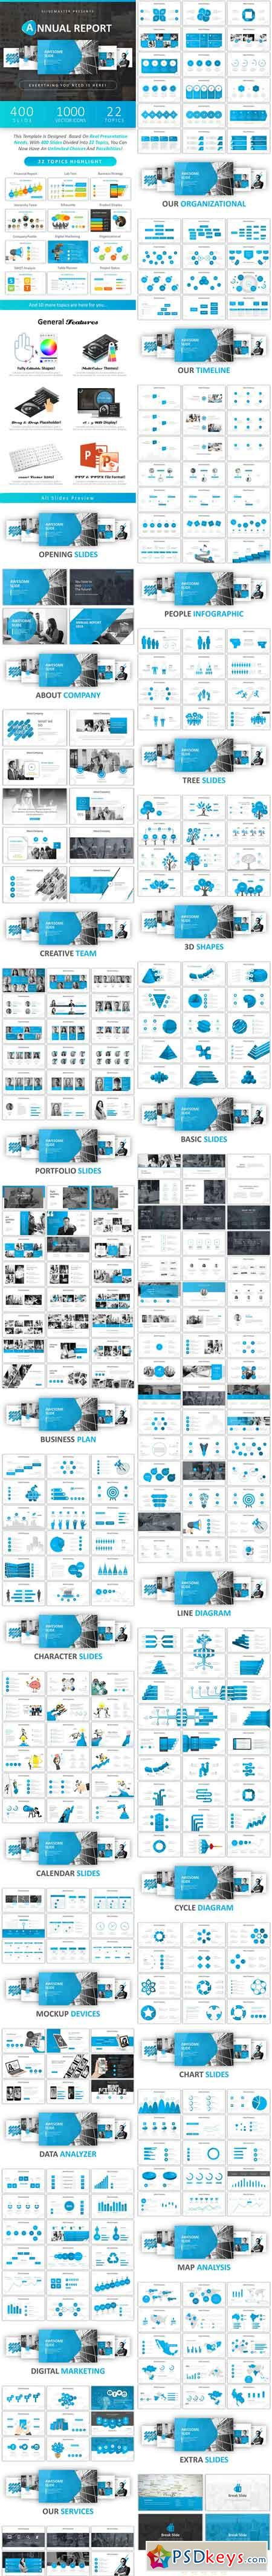 Annual Report Powerpoint 21307501 » Free Download Photoshop